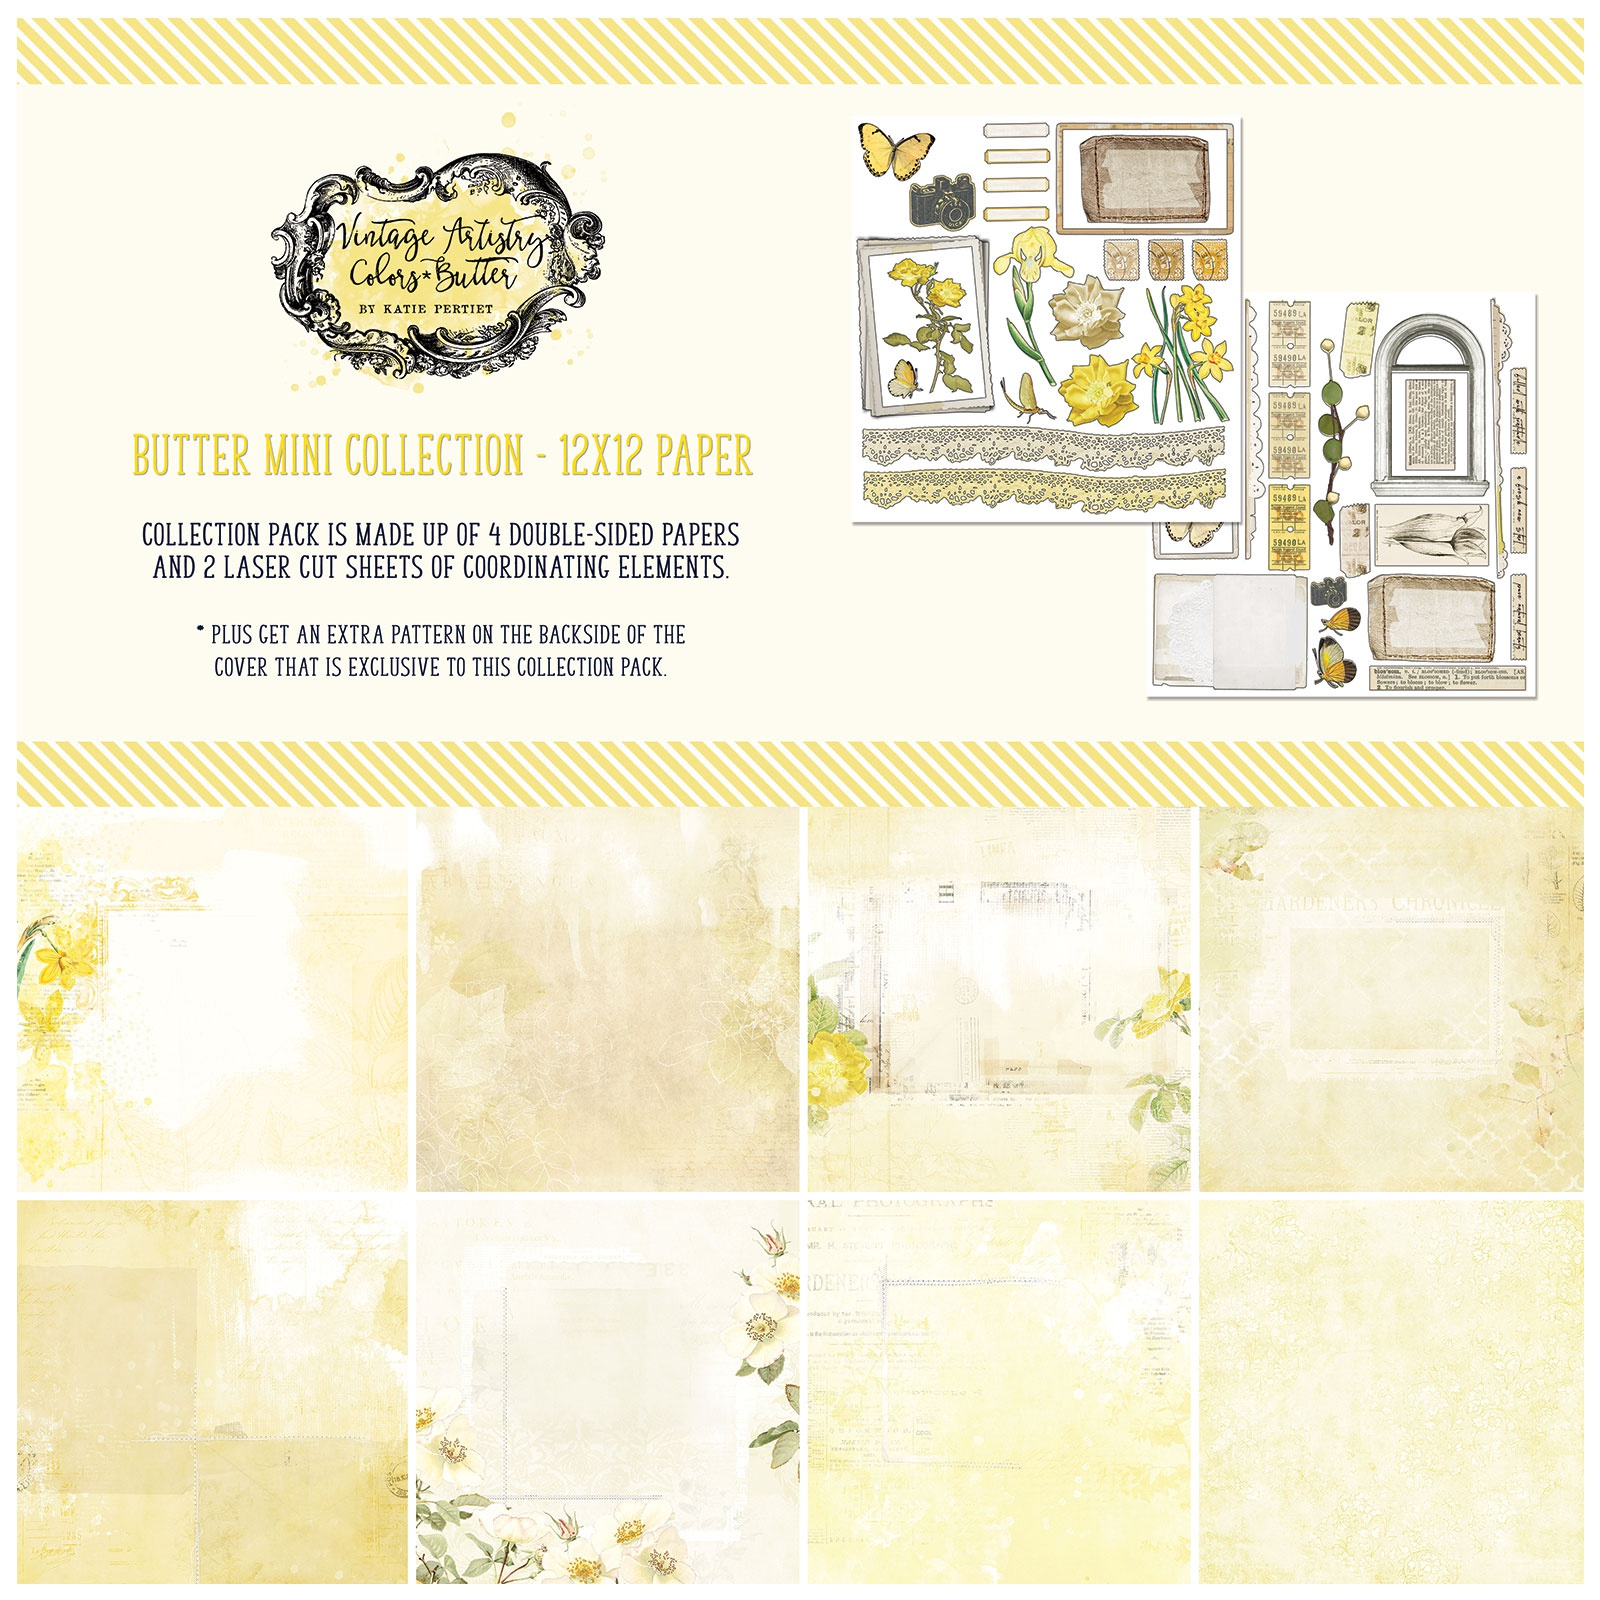 49 And Market Collection Pack 12X12-Vintage Artistry Butter